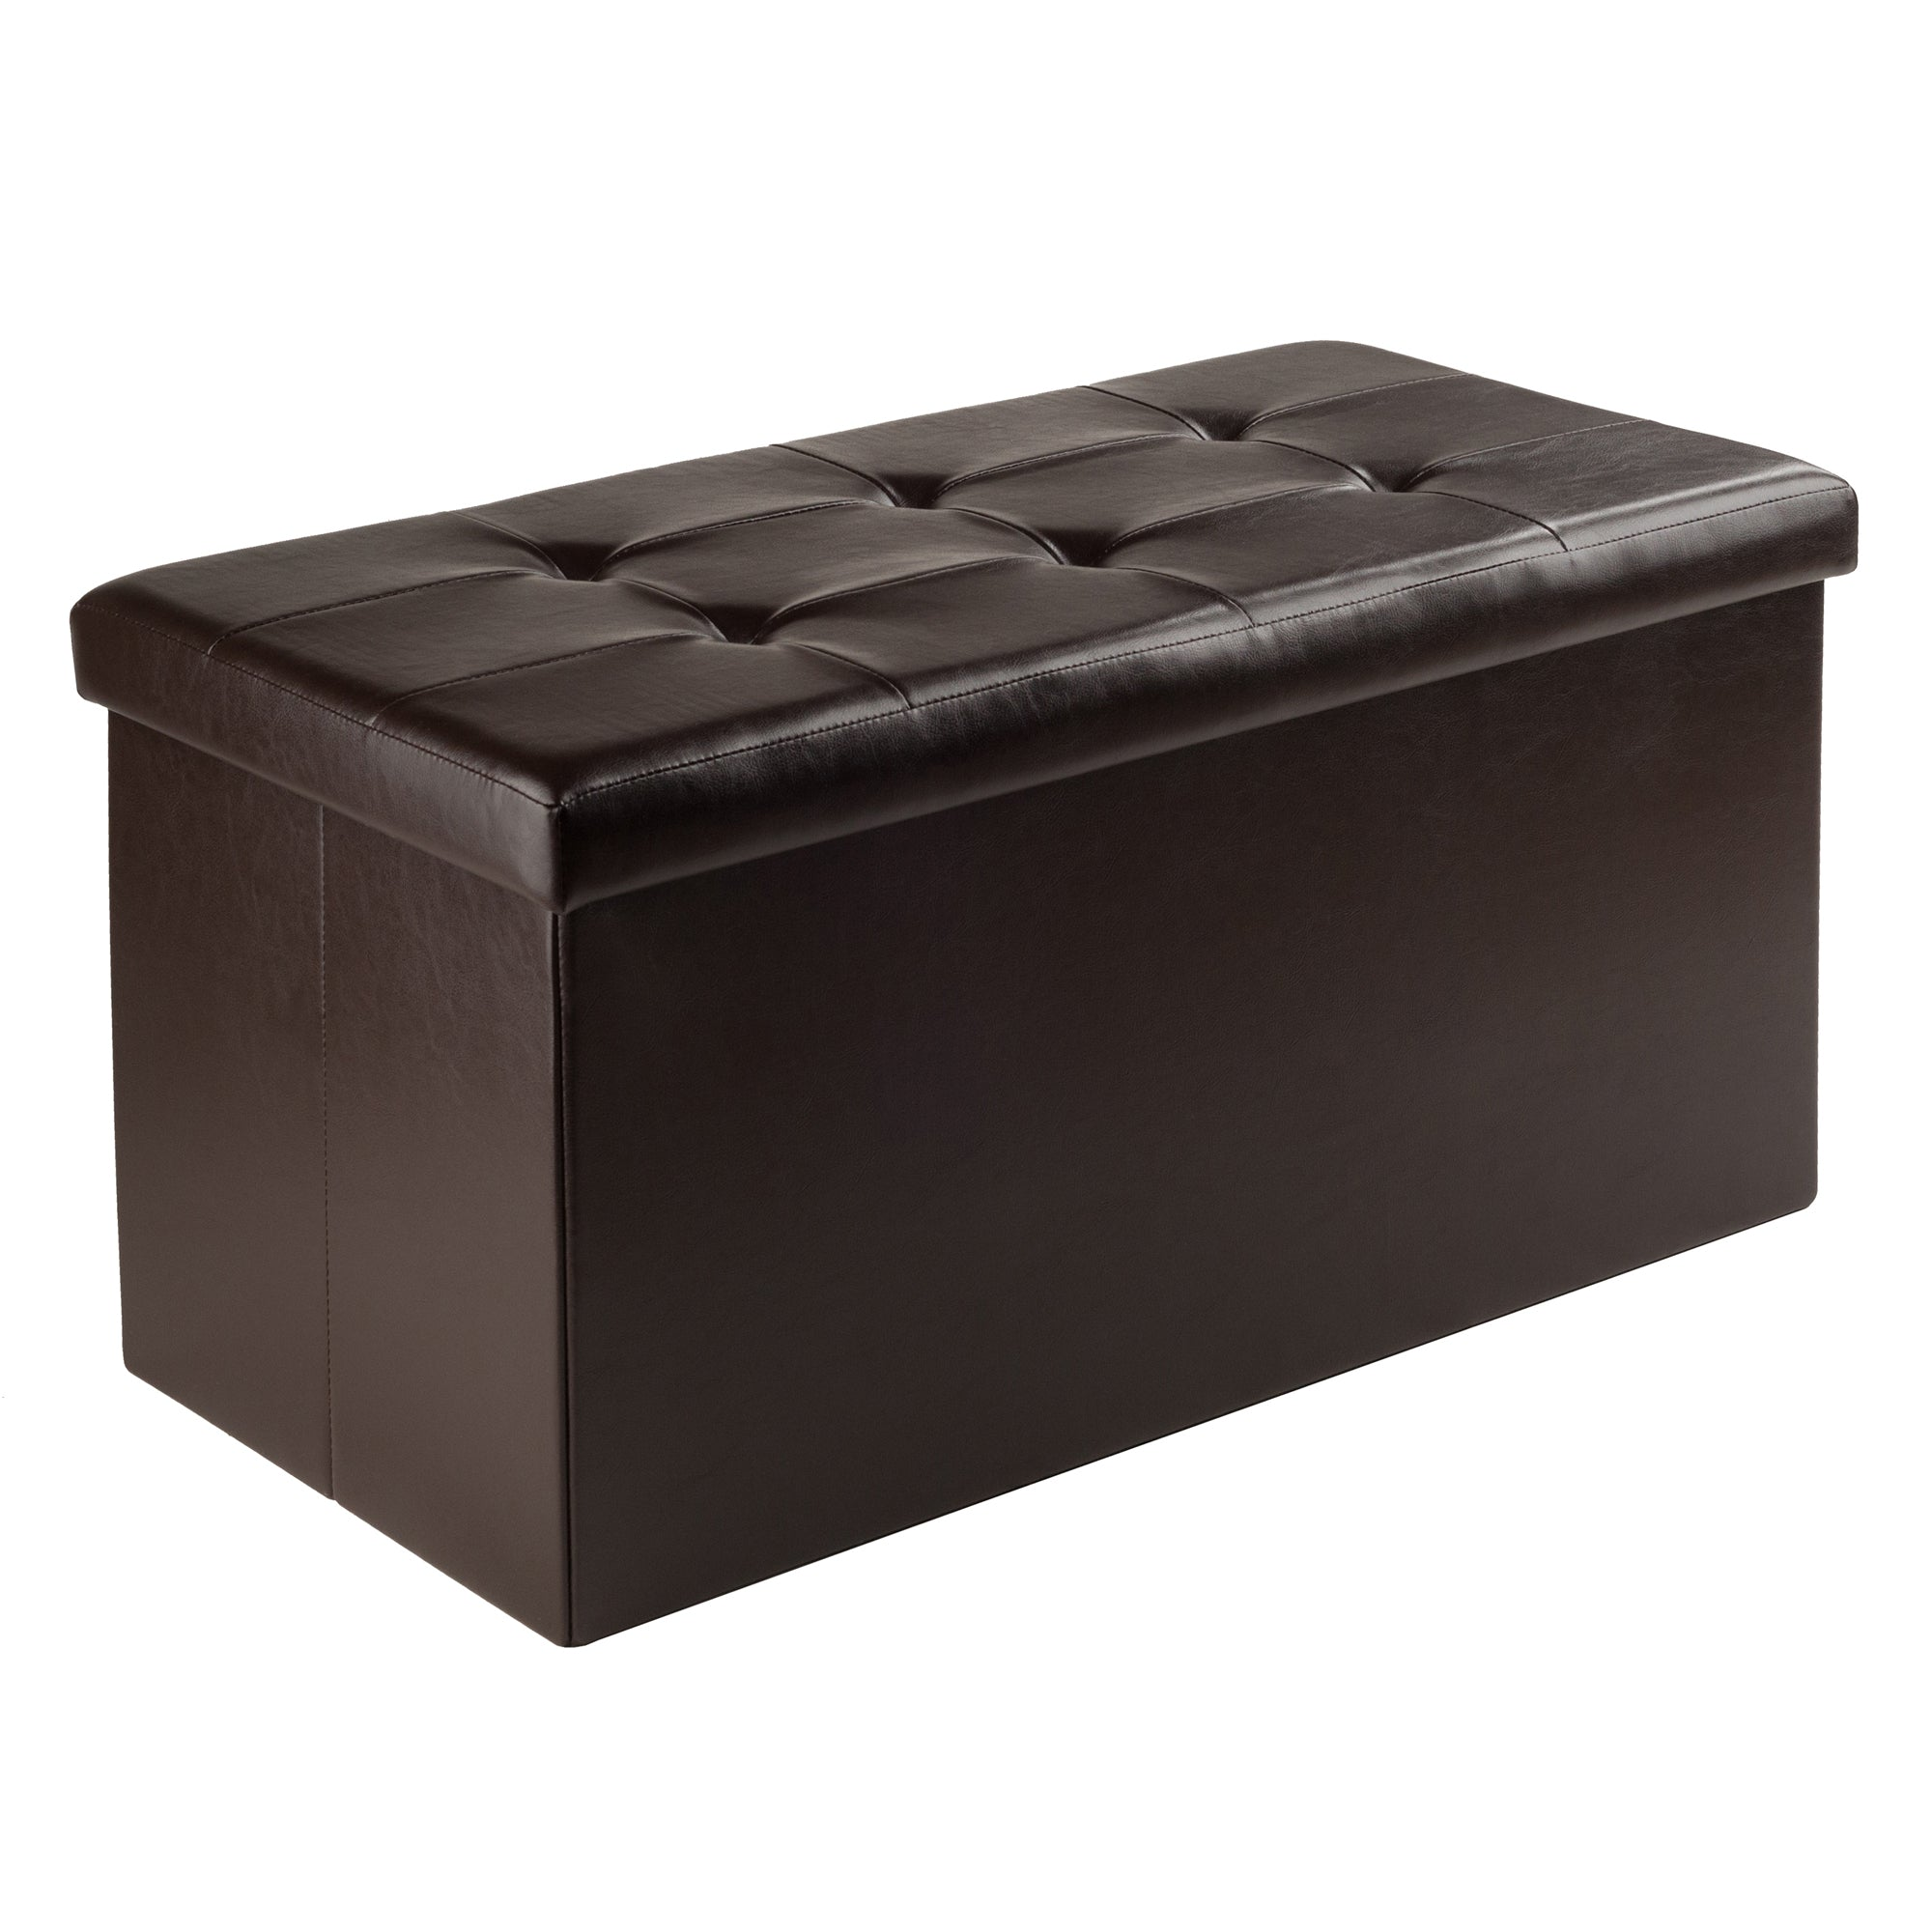 Ashford Ottoman with Storage Faux Leather - Pot Racks Plus